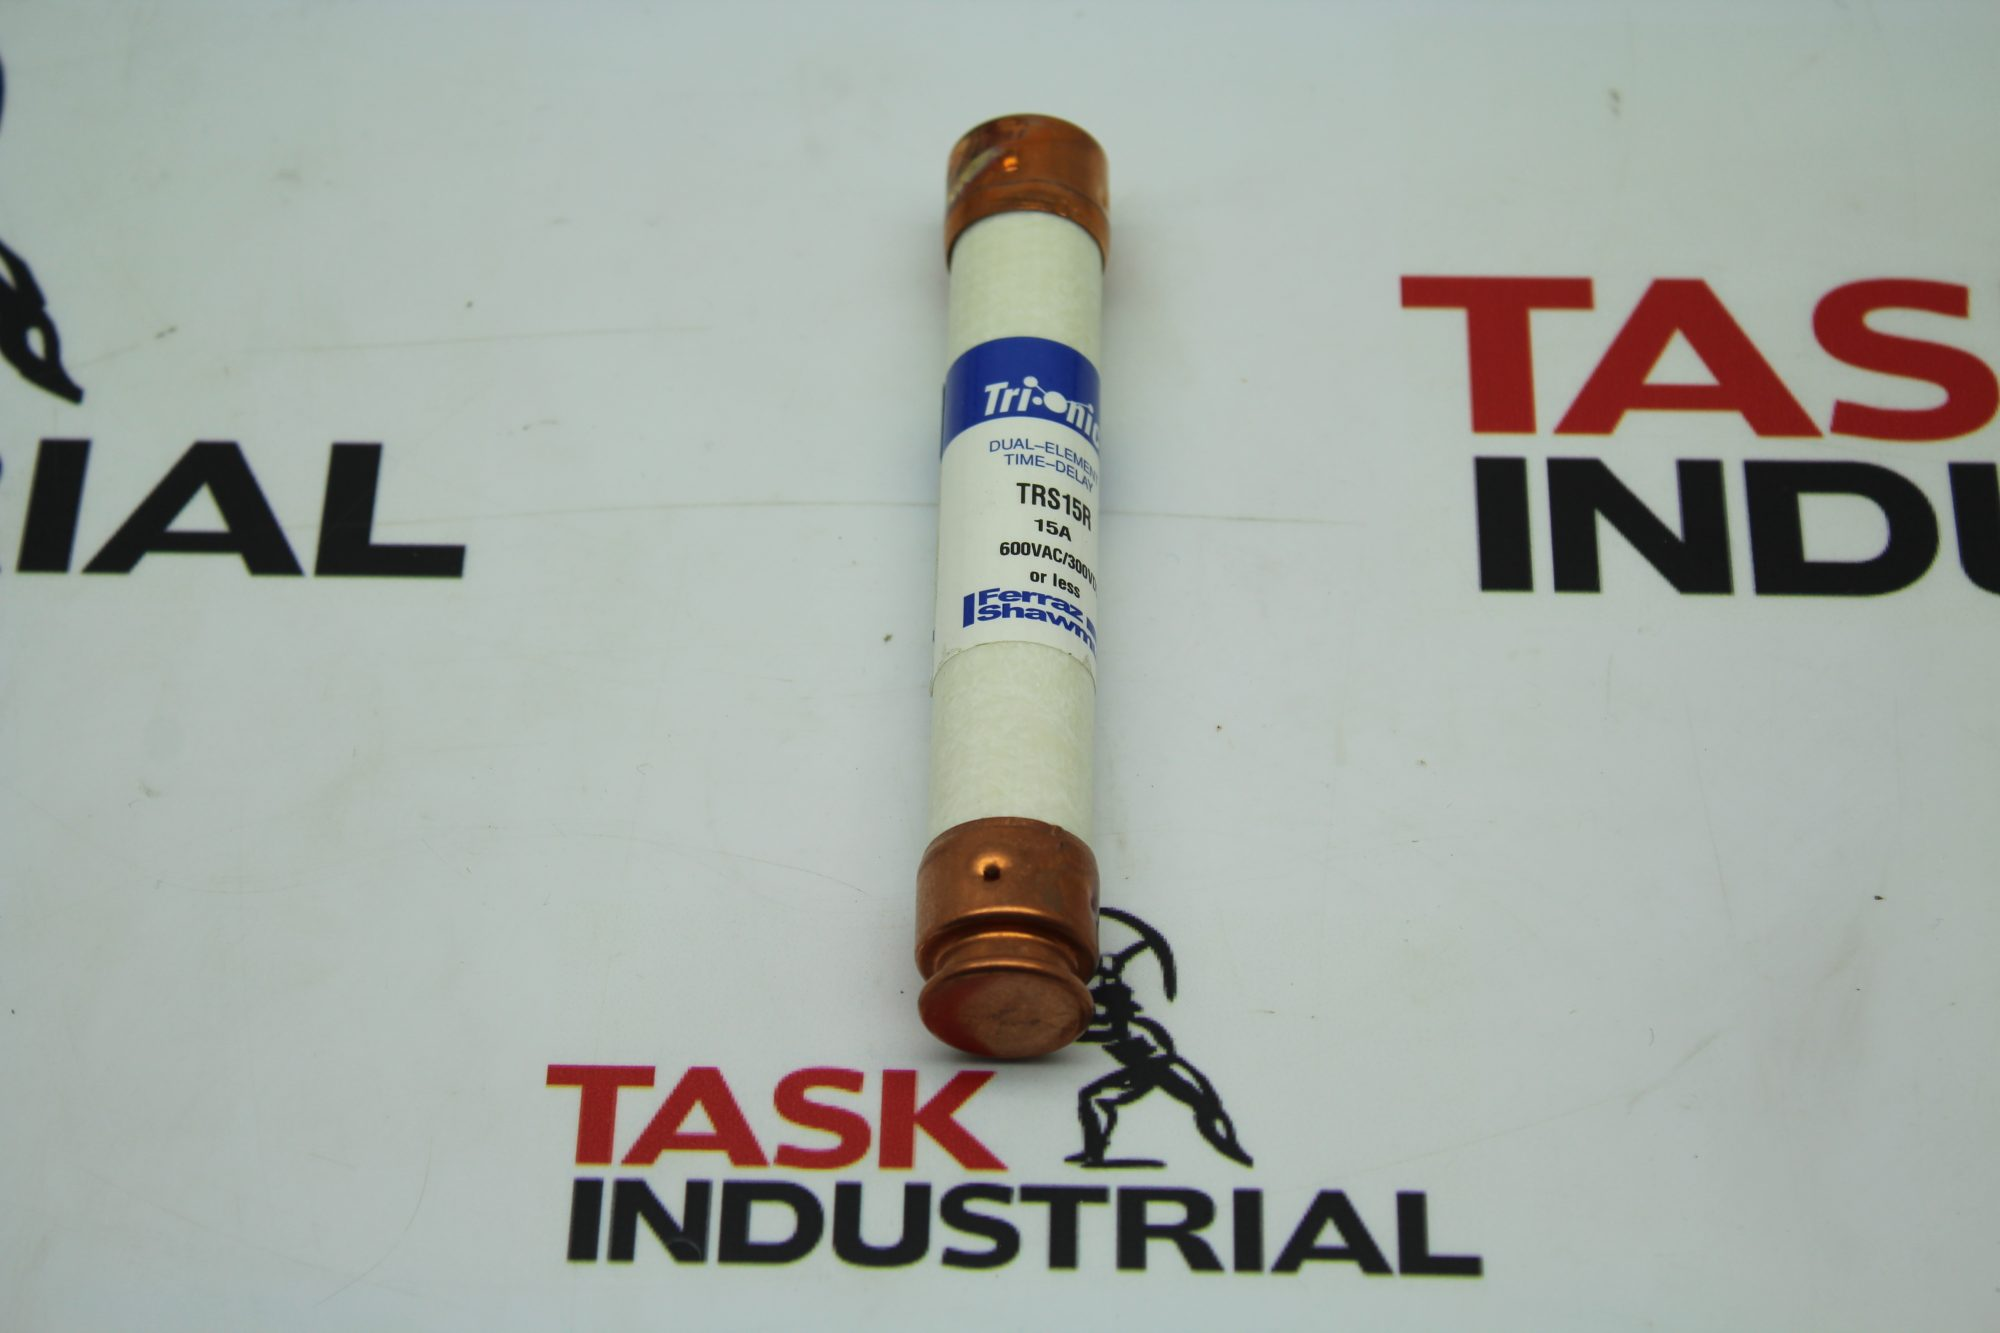 Trionic Dual-Element Time-Delay TRS15R 15A Fuse